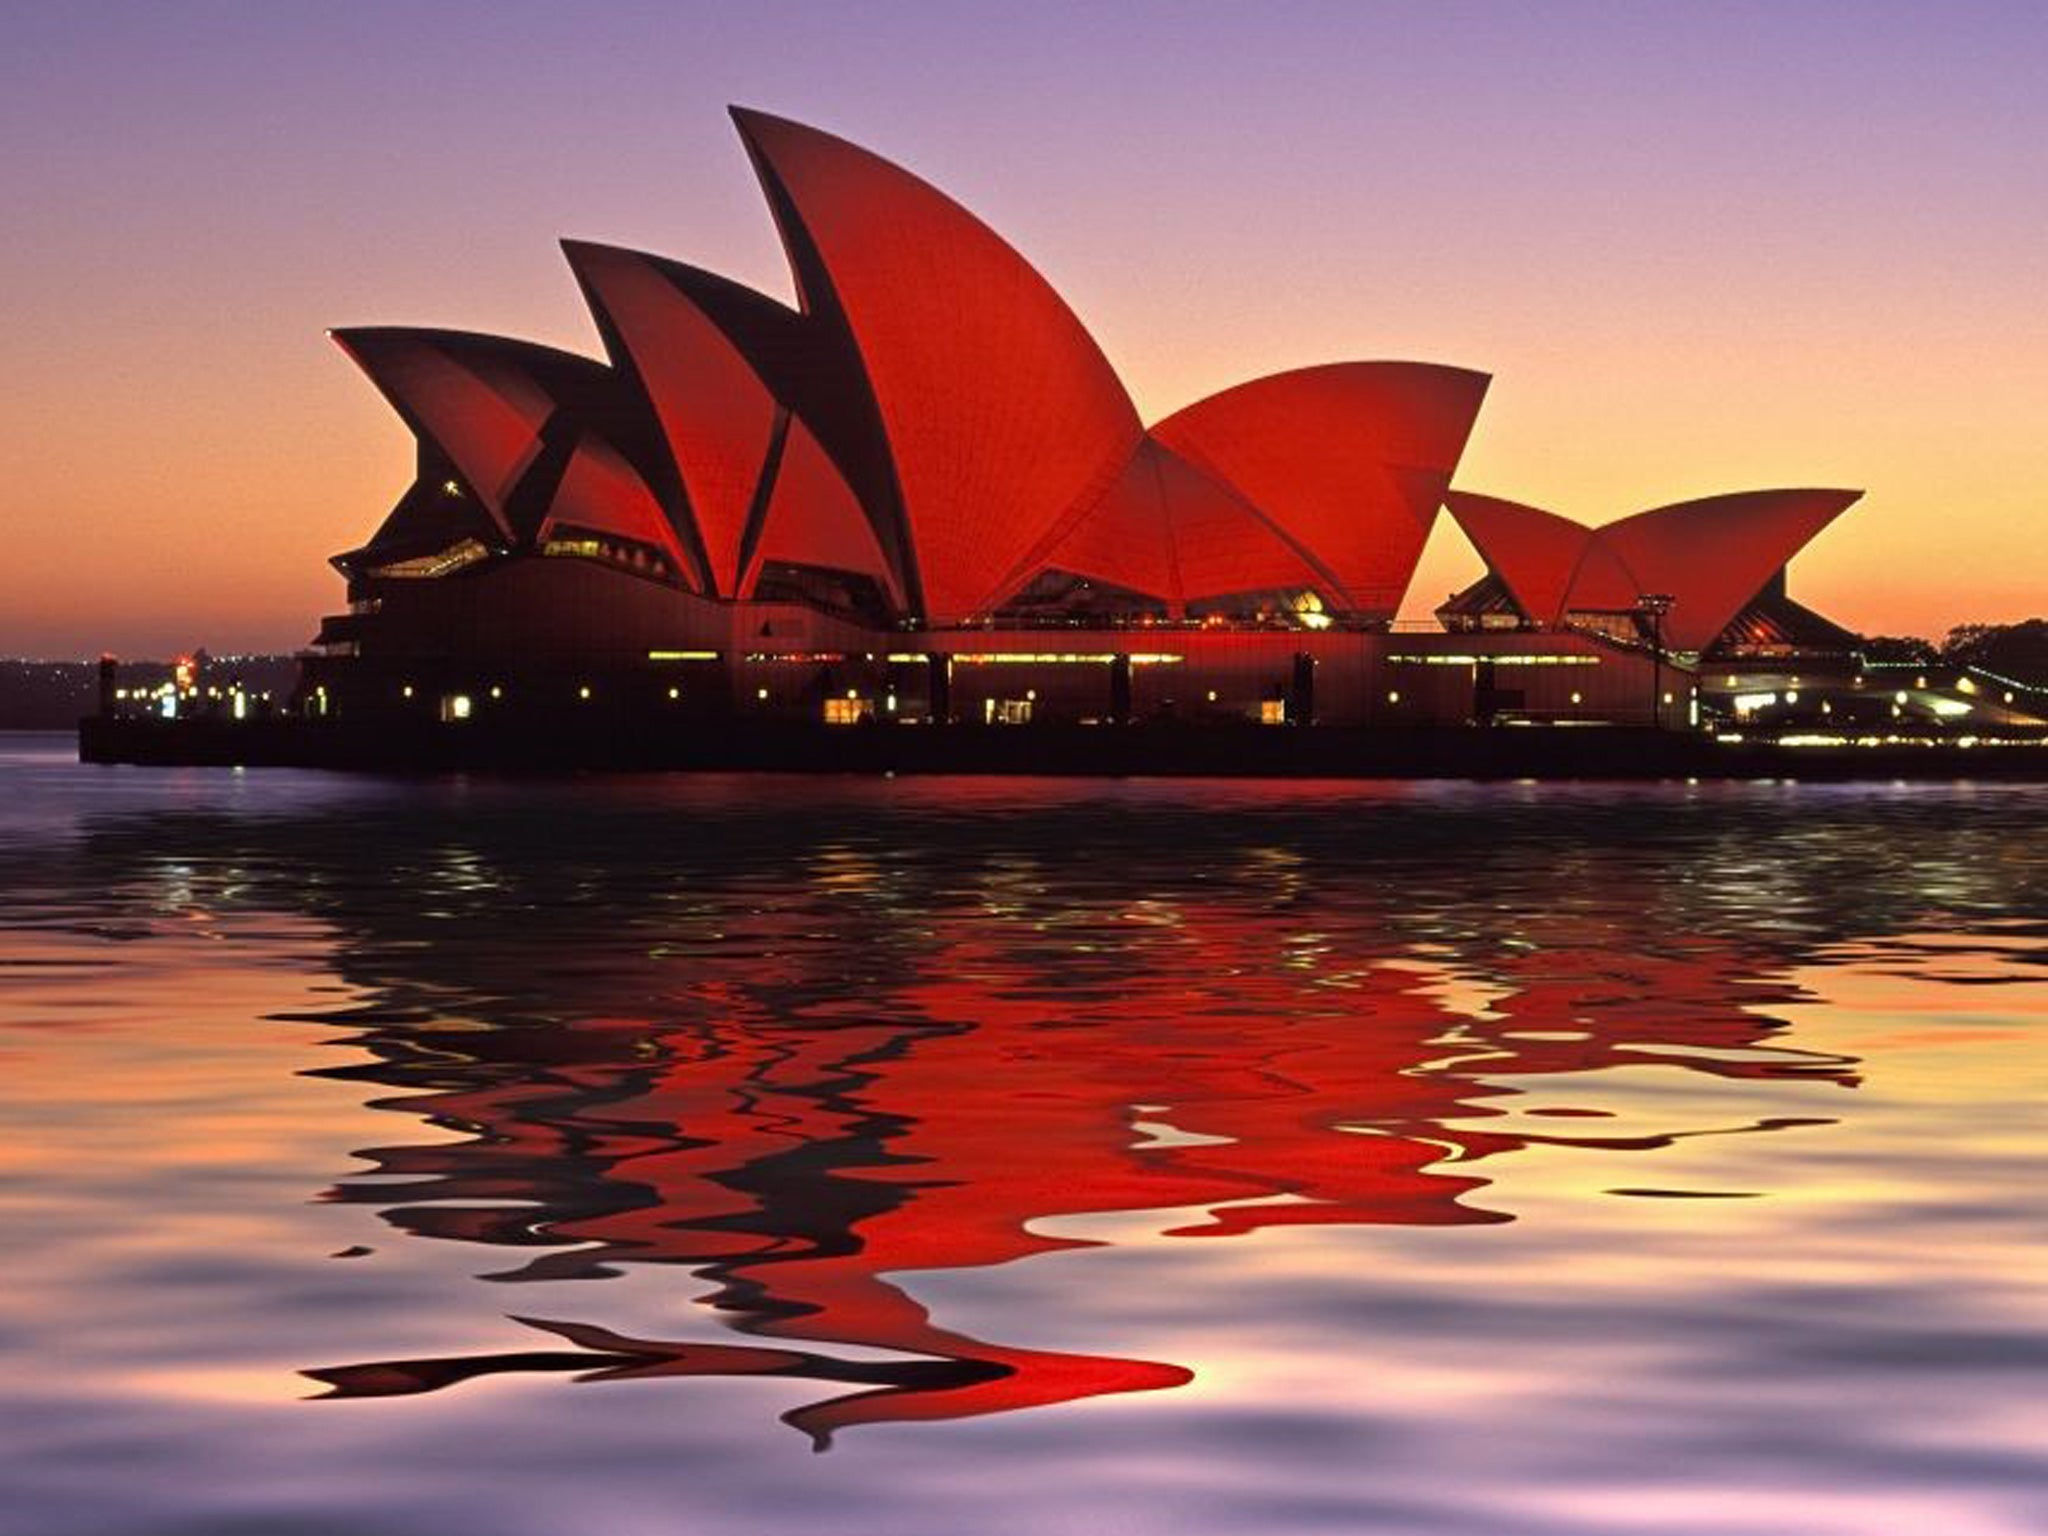 Australia travel: 10 inspiring articles to plan a holiday half-way round the world